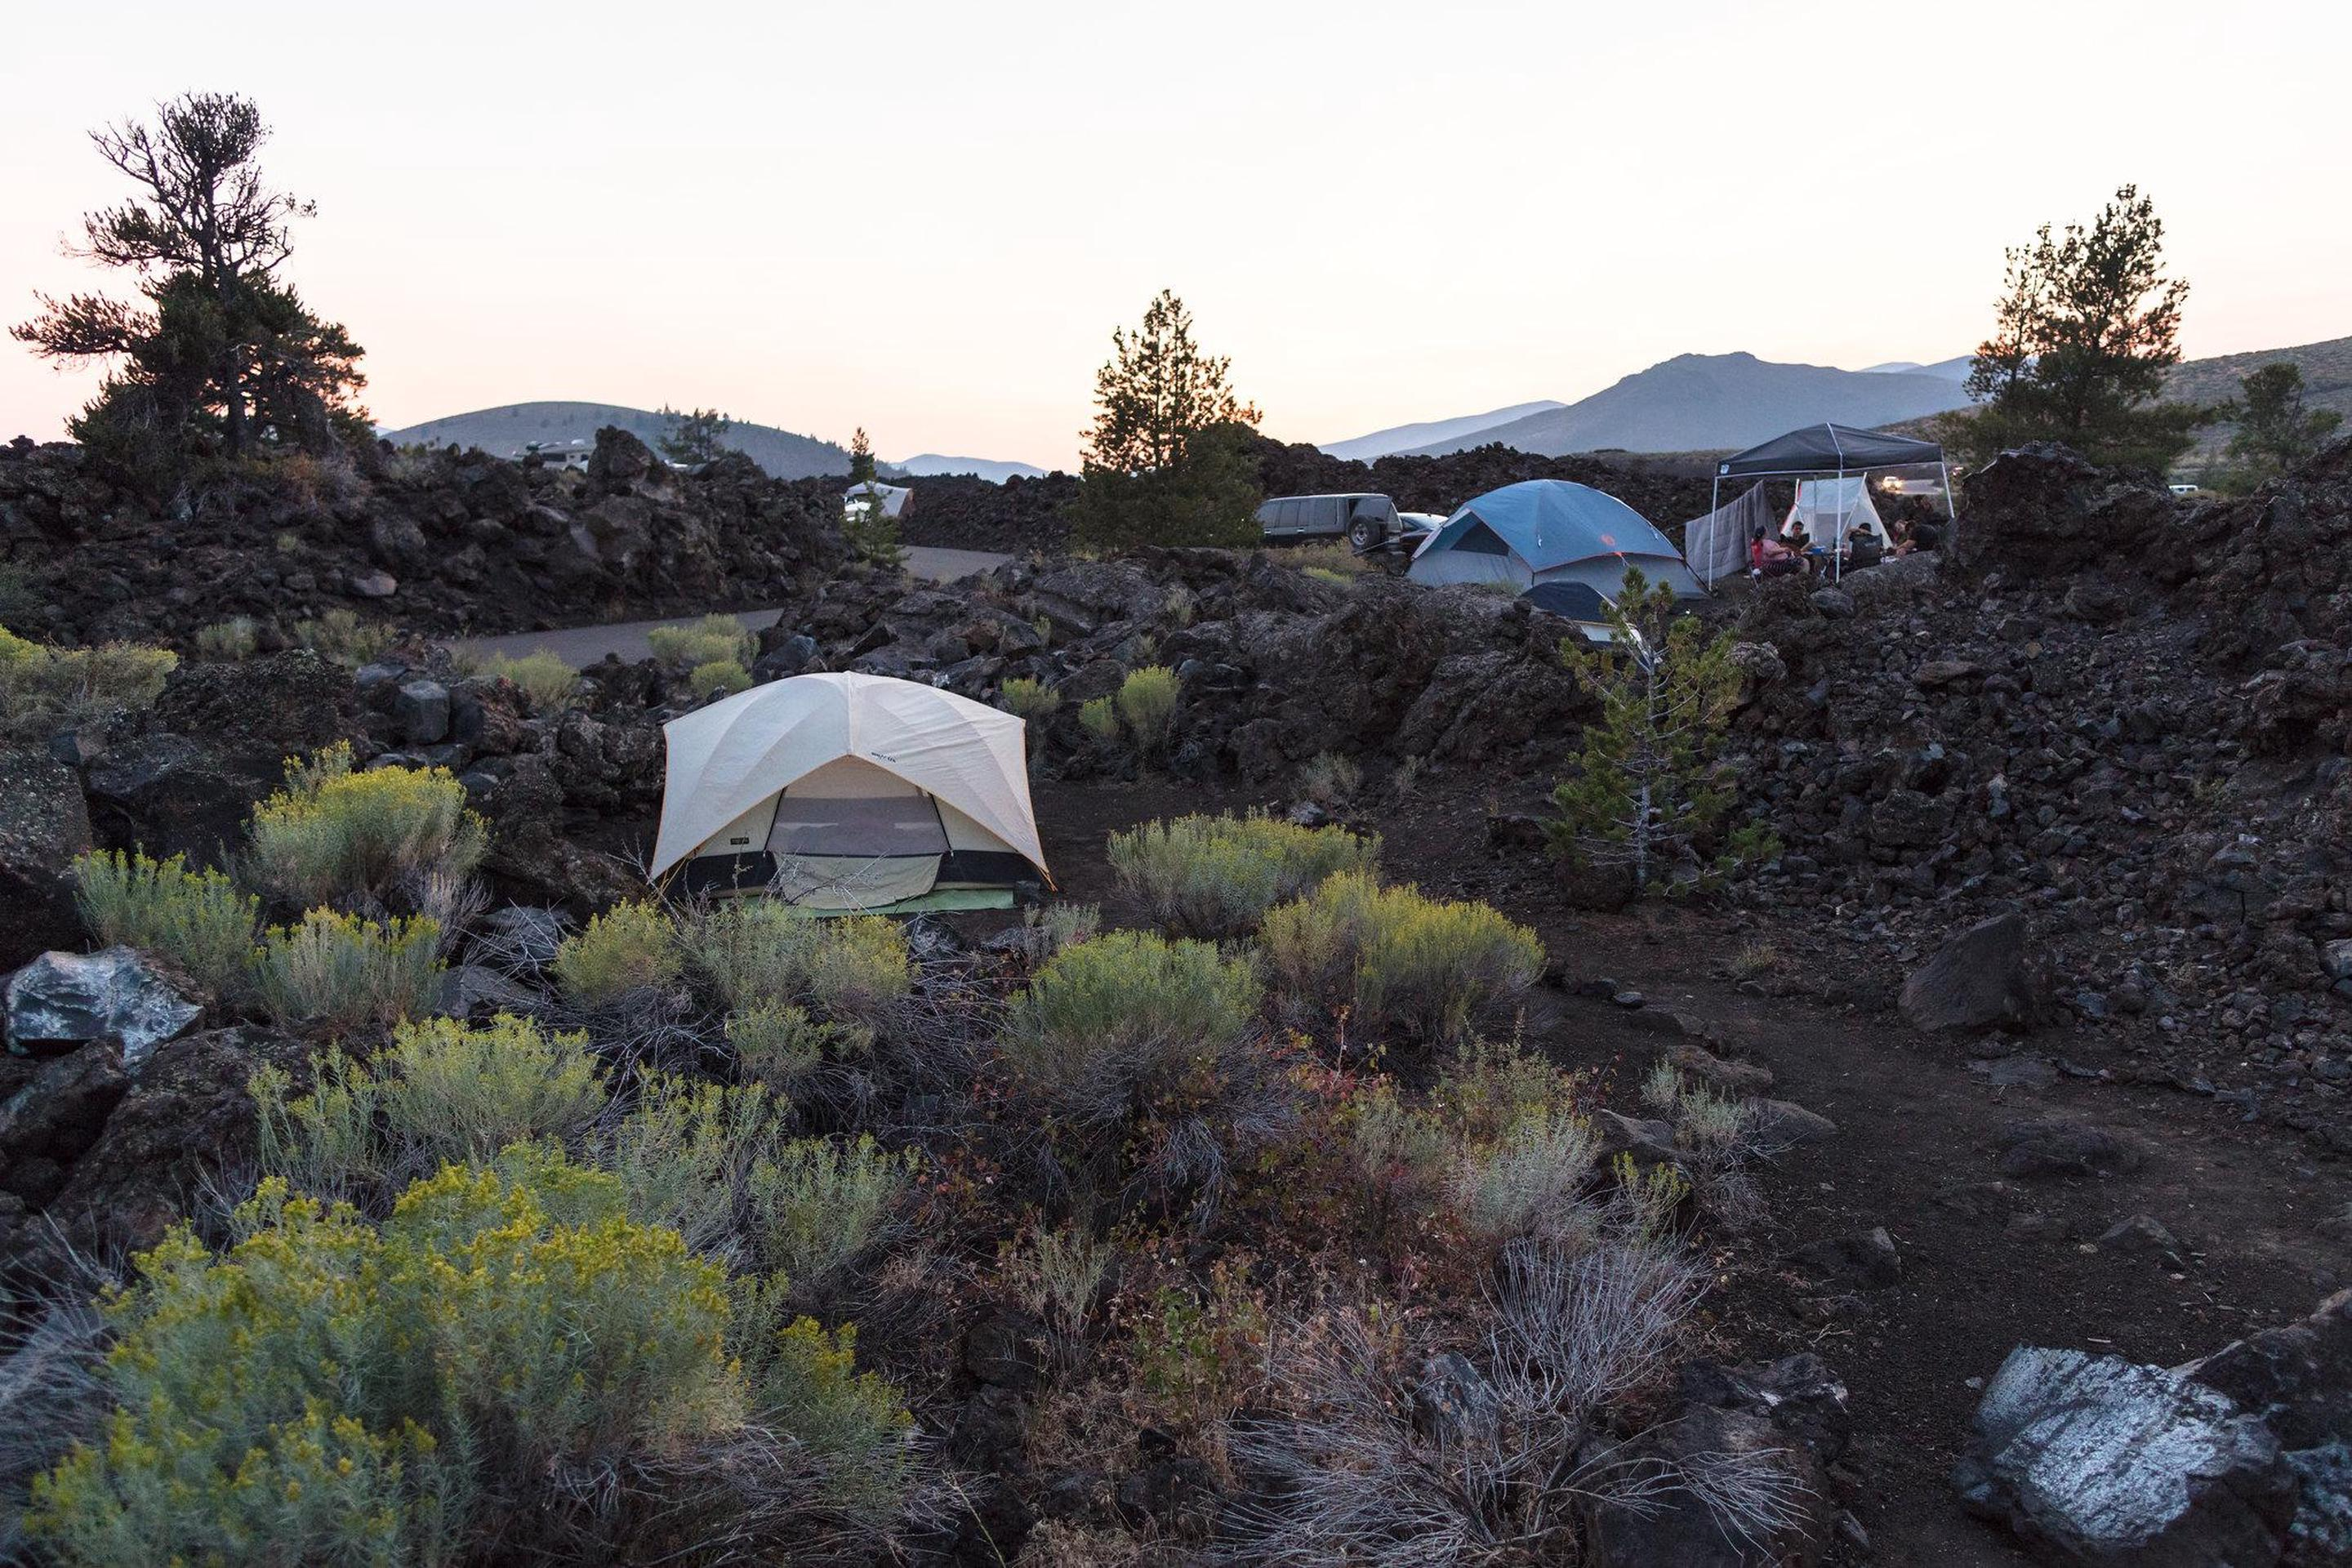 Lava Flow CampgroundThe Lava Flow Campground offers a unique camping experience and is conveniently located near the park visitor center and popular trails.